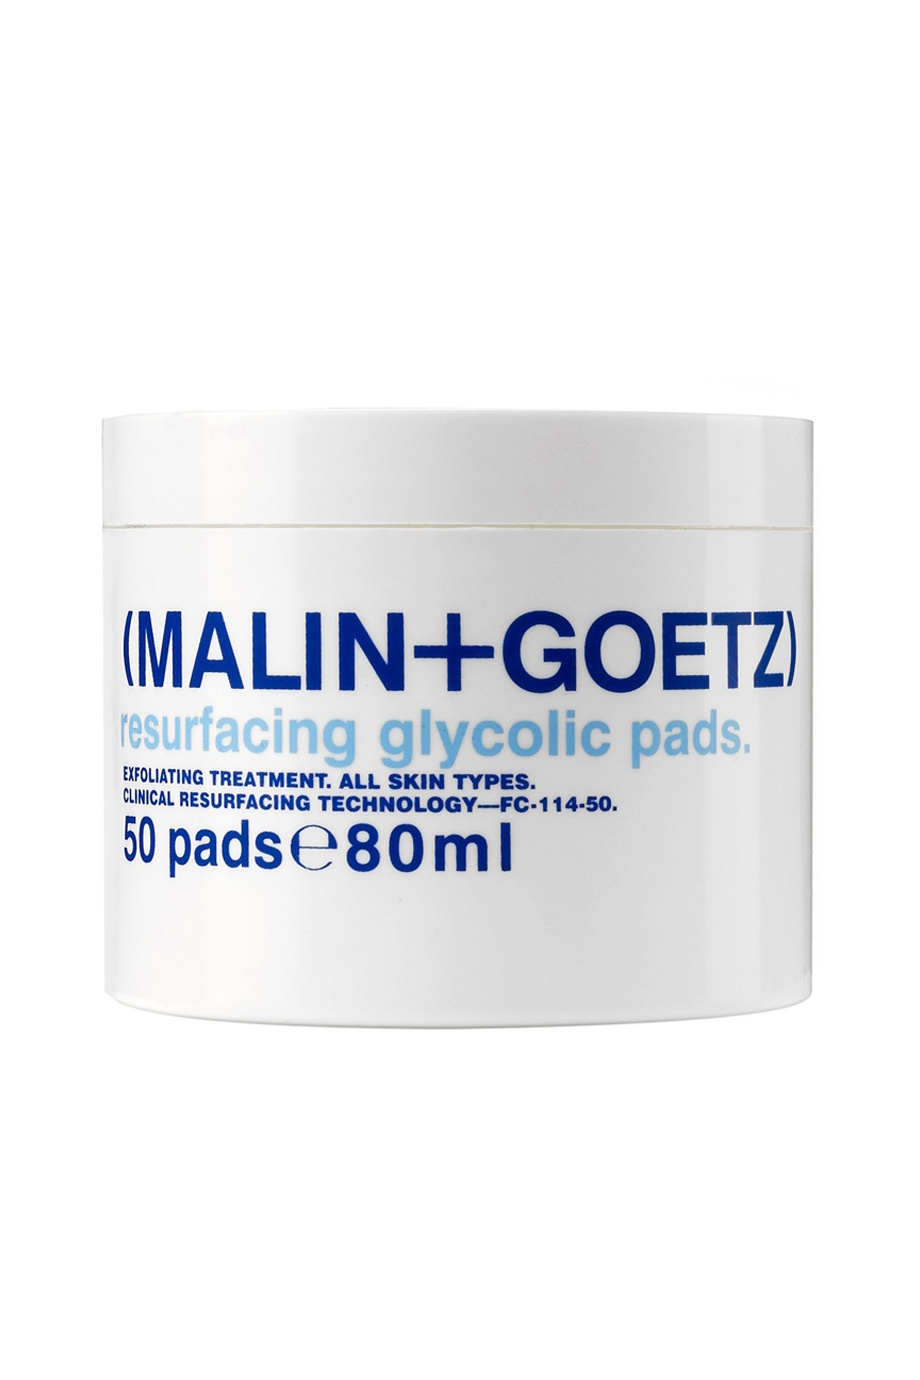 Диск-скраб для лица Resurfacing Glycolic Pads 50шт Malin+Goetz (фото)